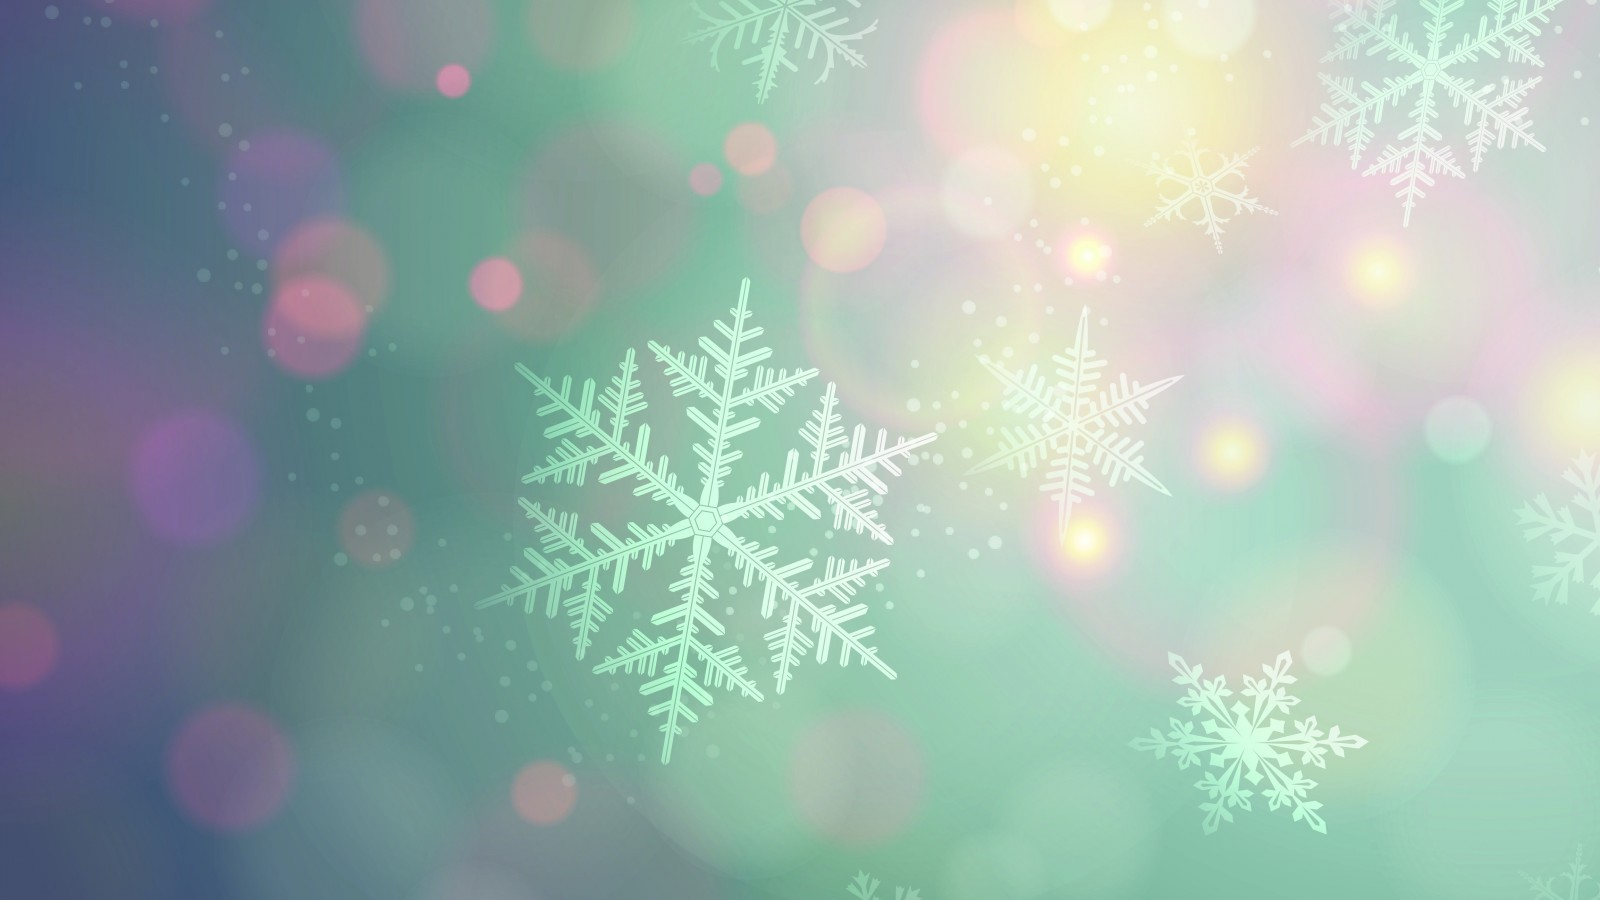 15910 download wallpaper Winter, Background, Snowflakes screensavers and pictures for free